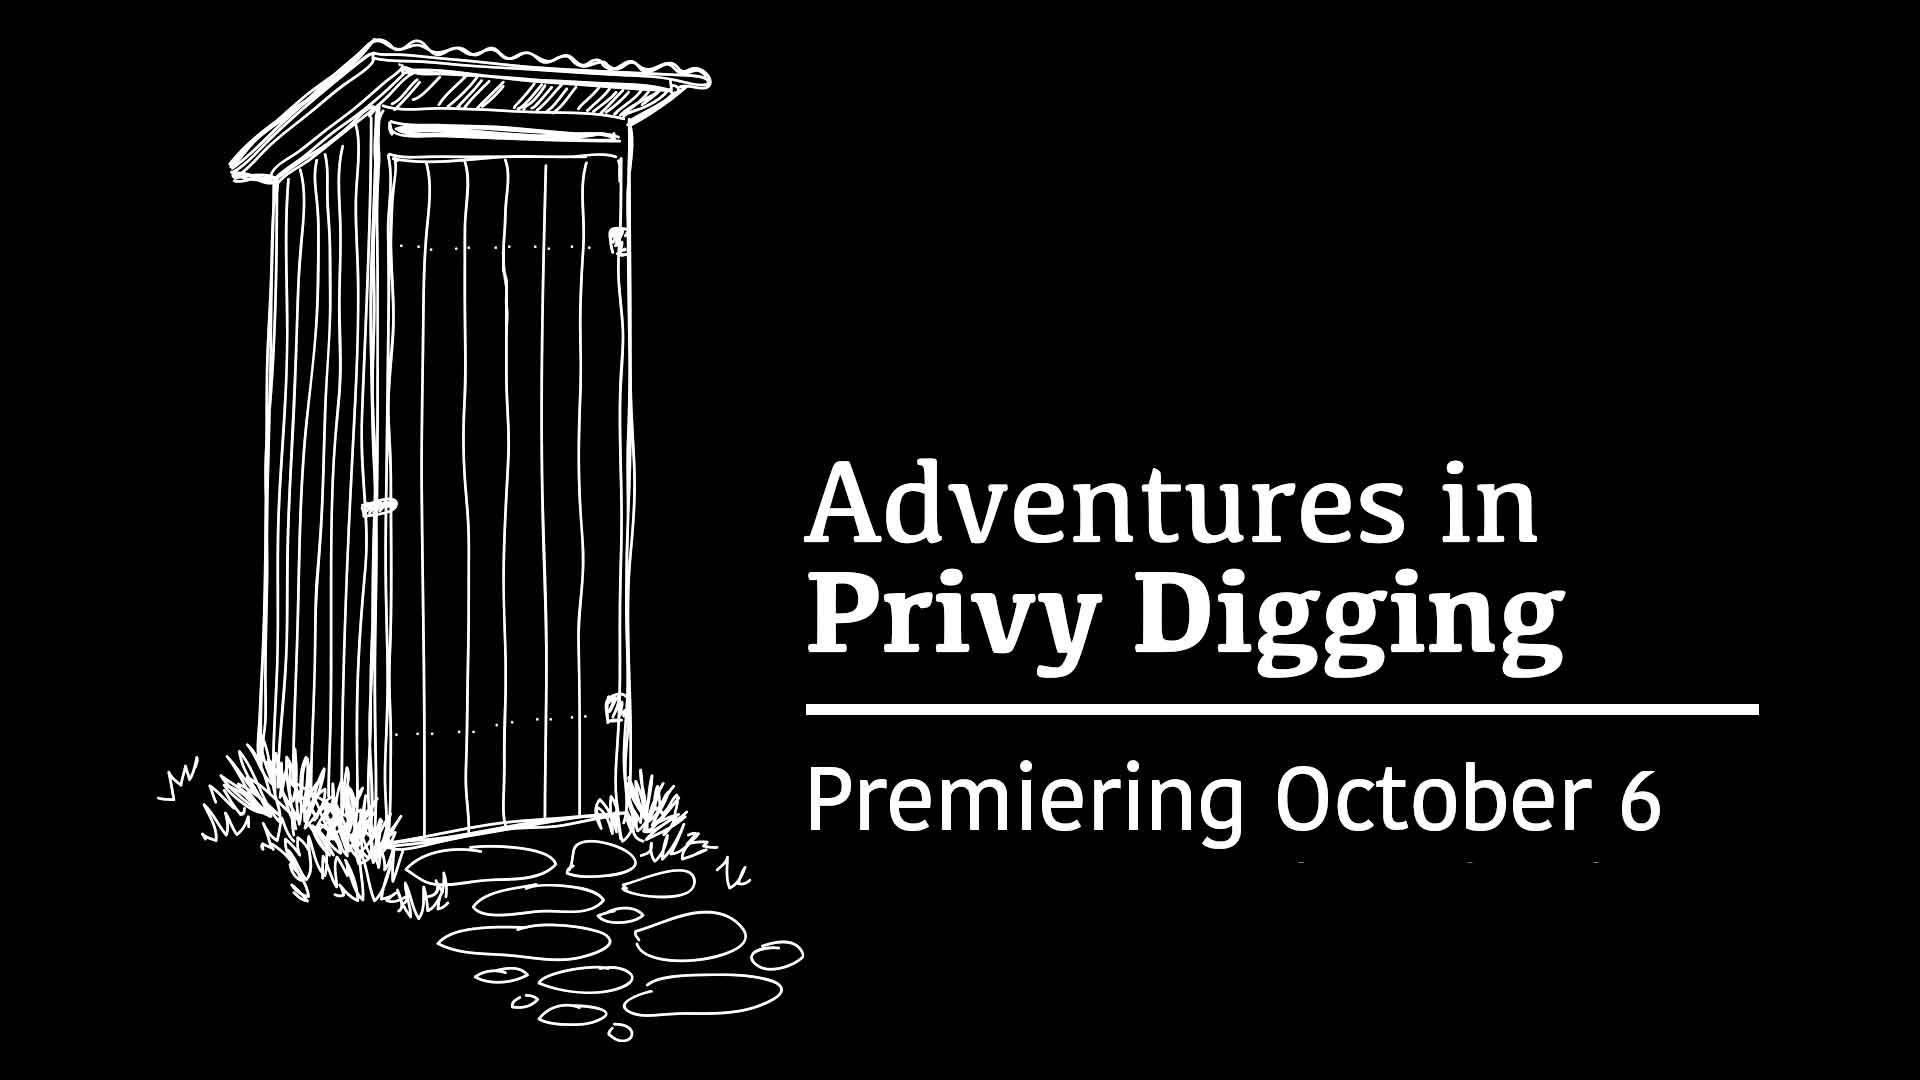 Adventures in Privy Digging title card